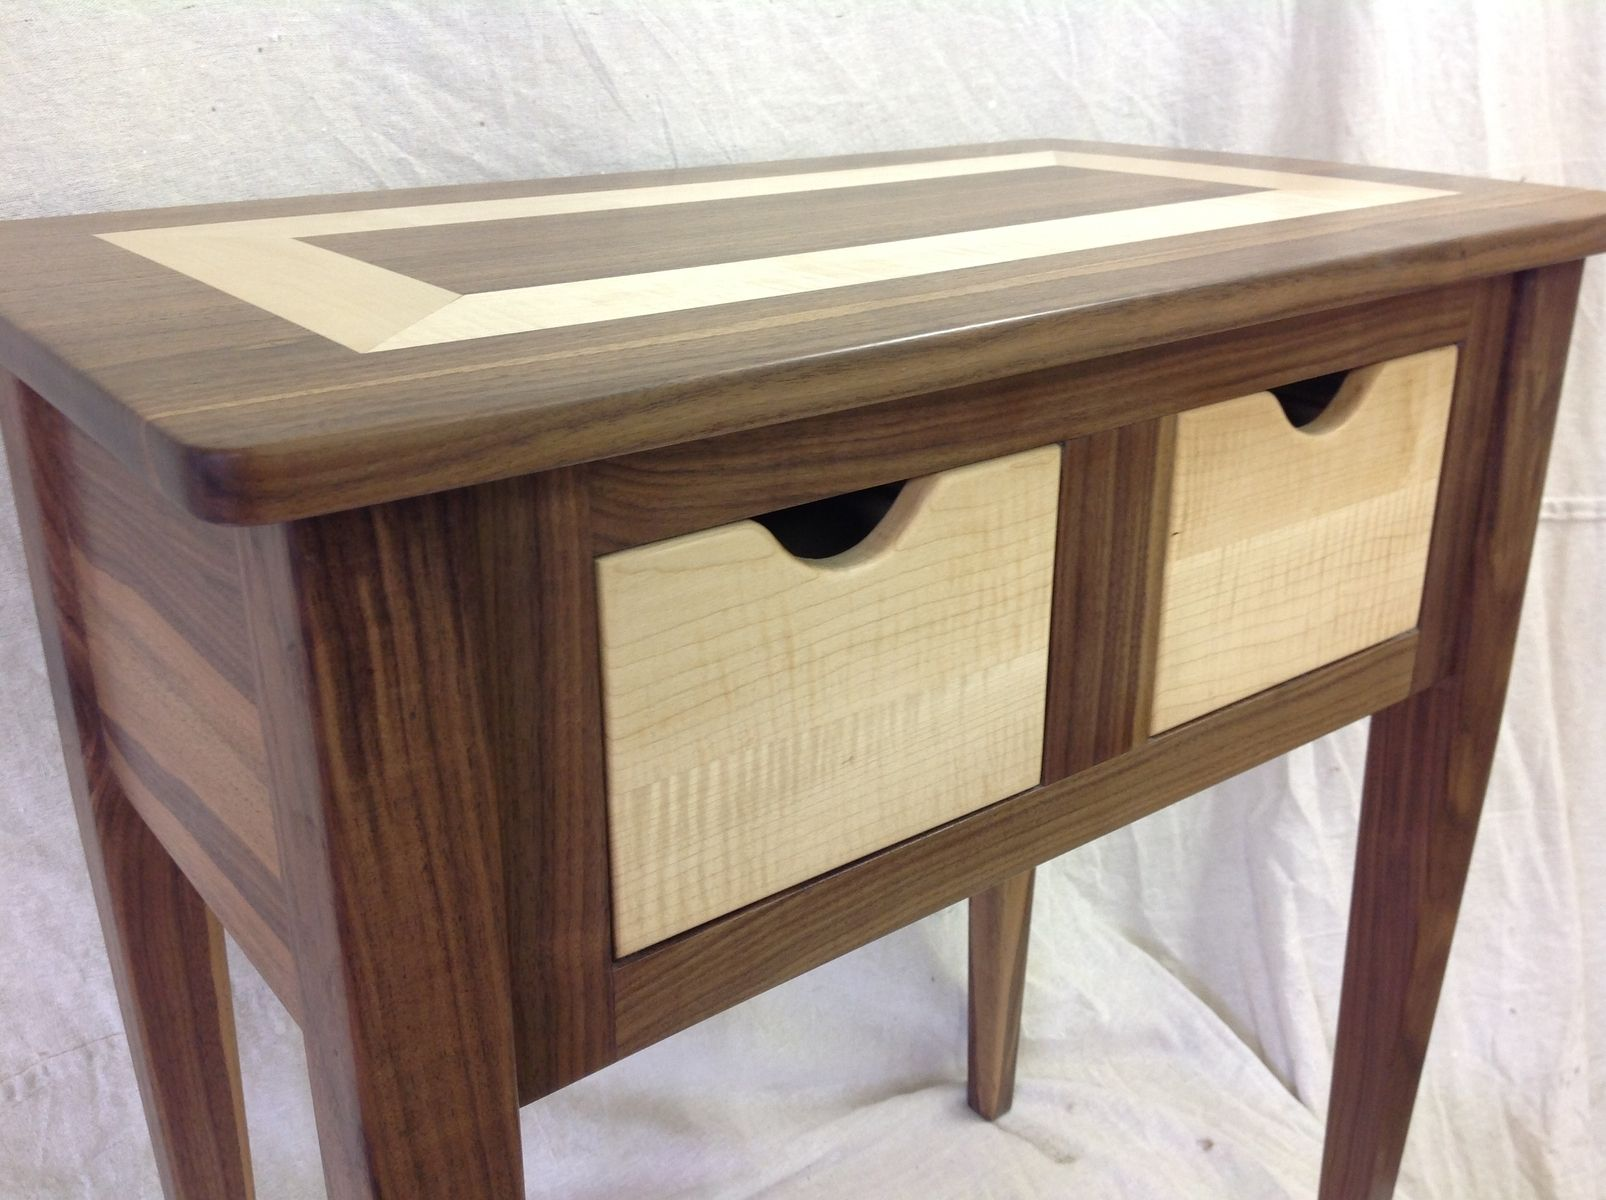 custom made black walnut and tiger maple end table by moose pond woodworking. Black Bedroom Furniture Sets. Home Design Ideas